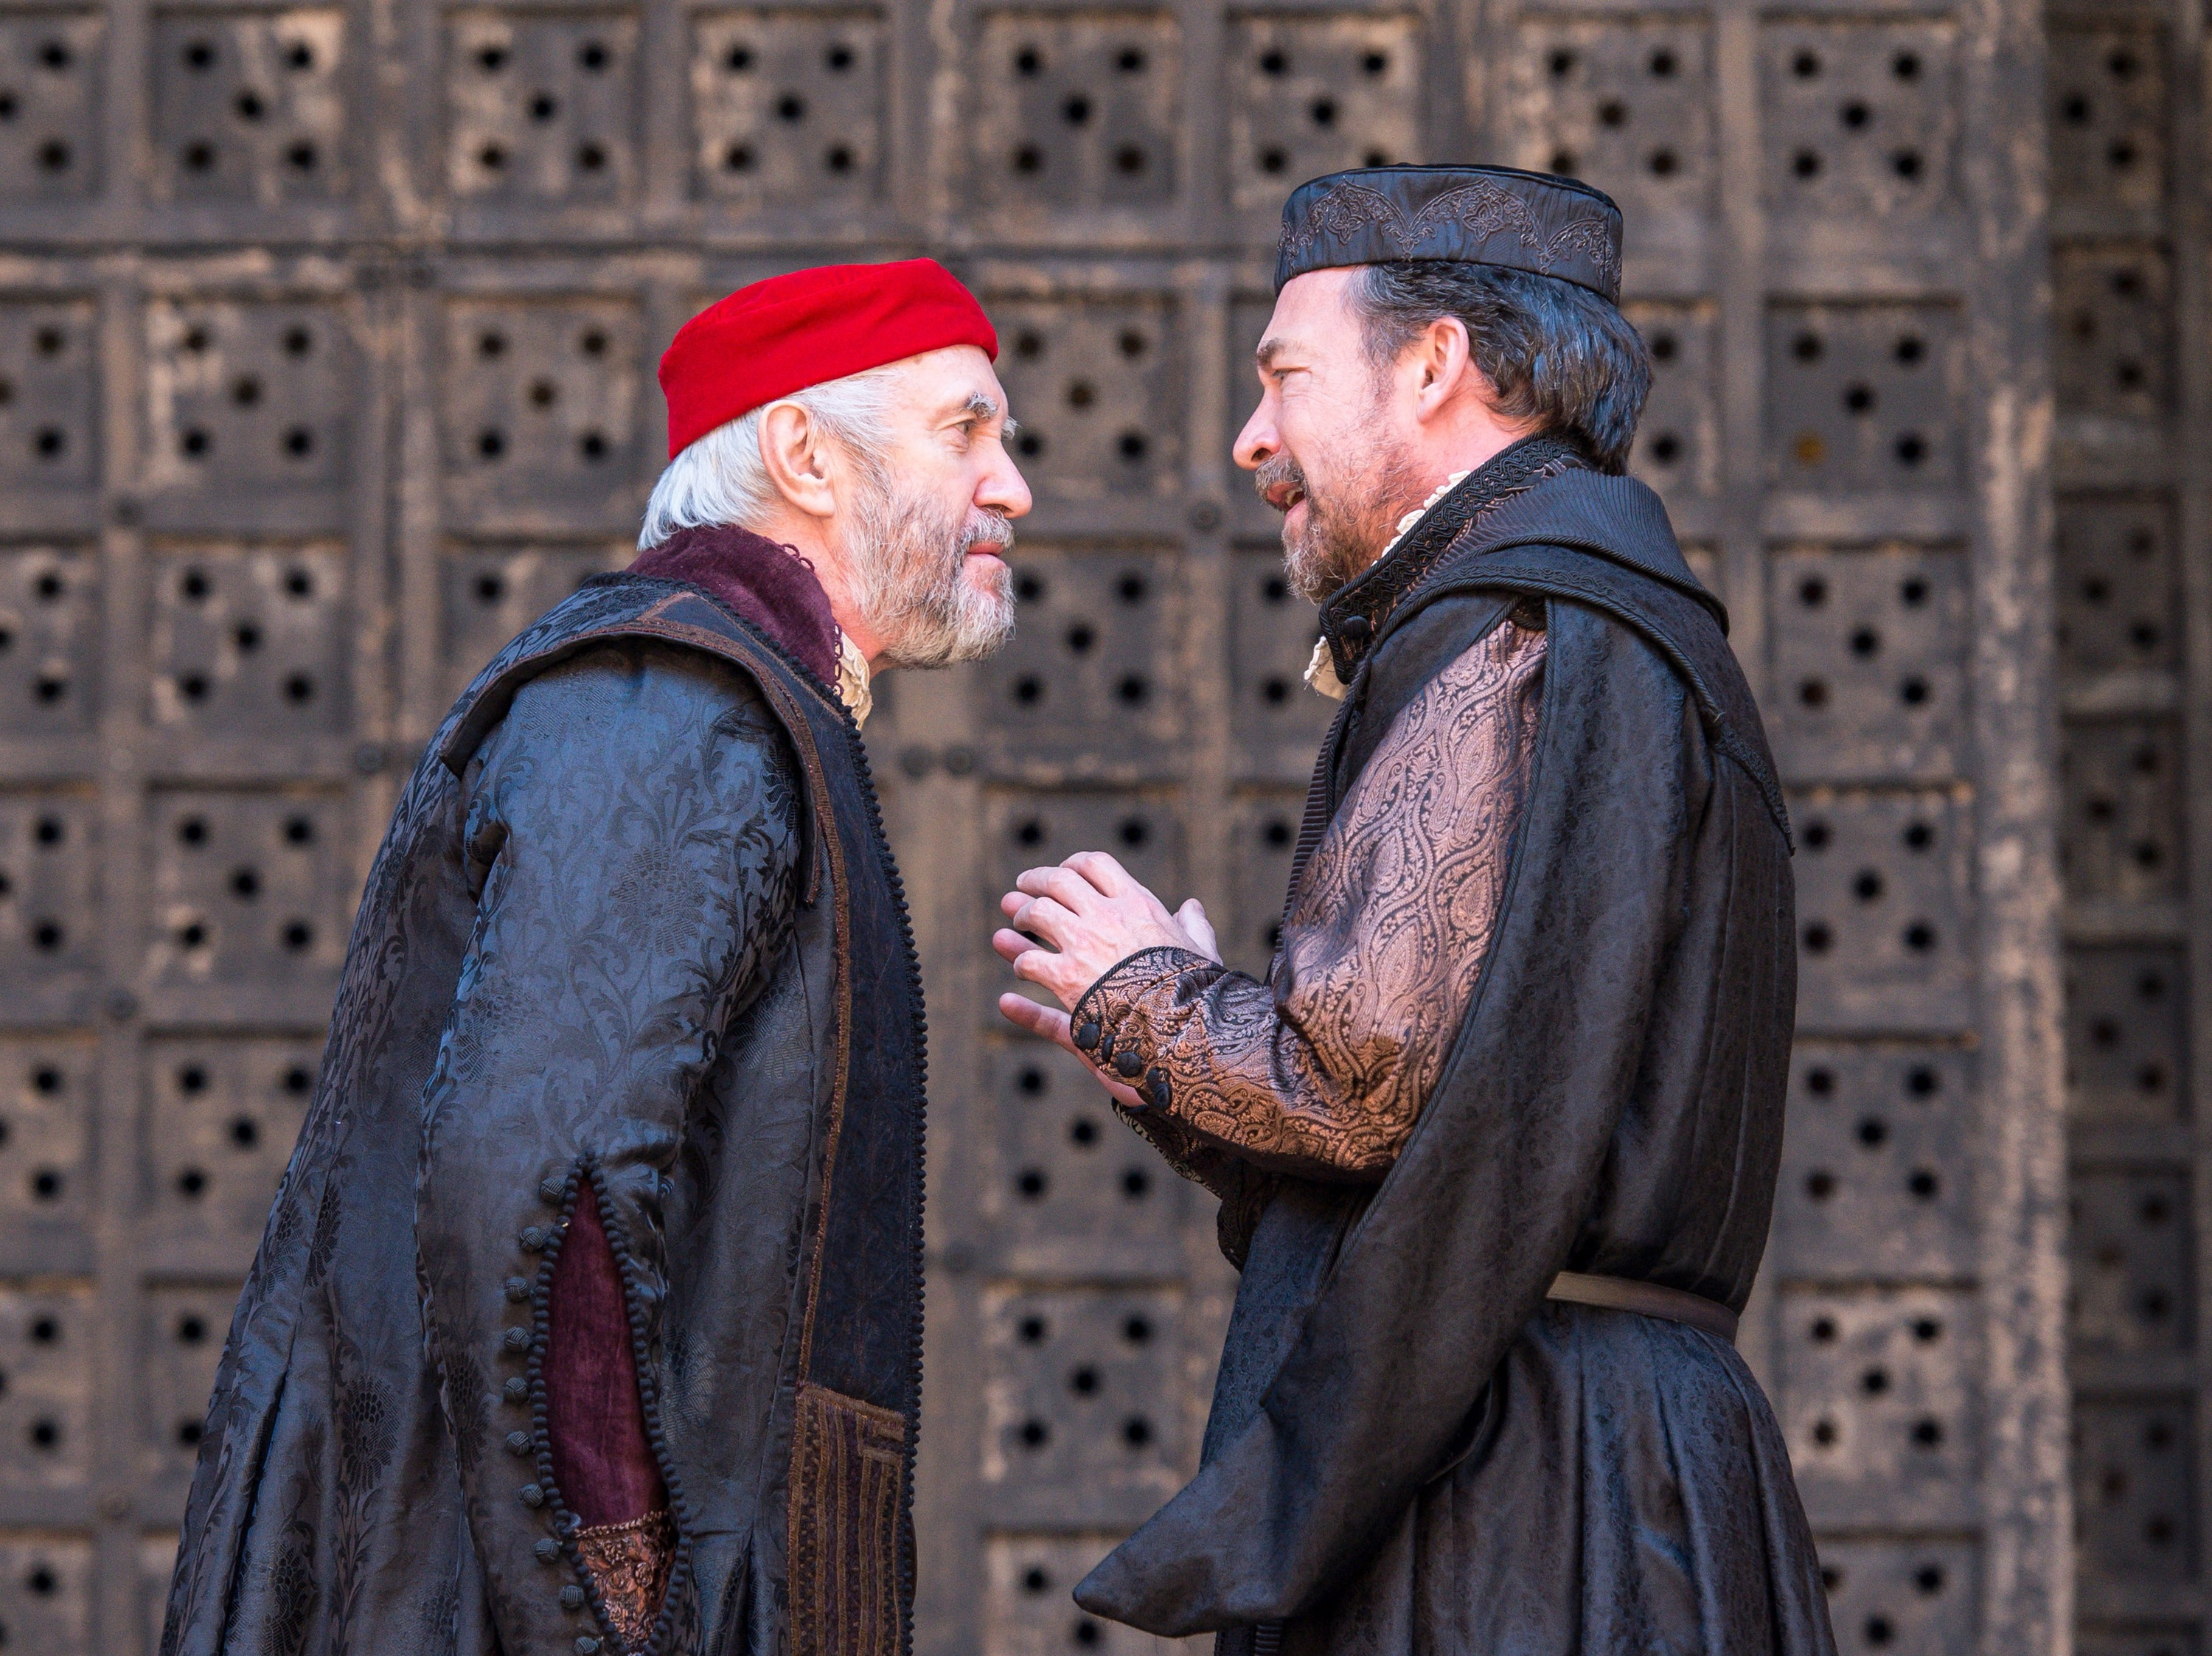 revenge essays merchant venice The merchant of venice essay these are the true reasons why a man that wants revenge therefore that is why shylock is a villain in the merchant of venice.